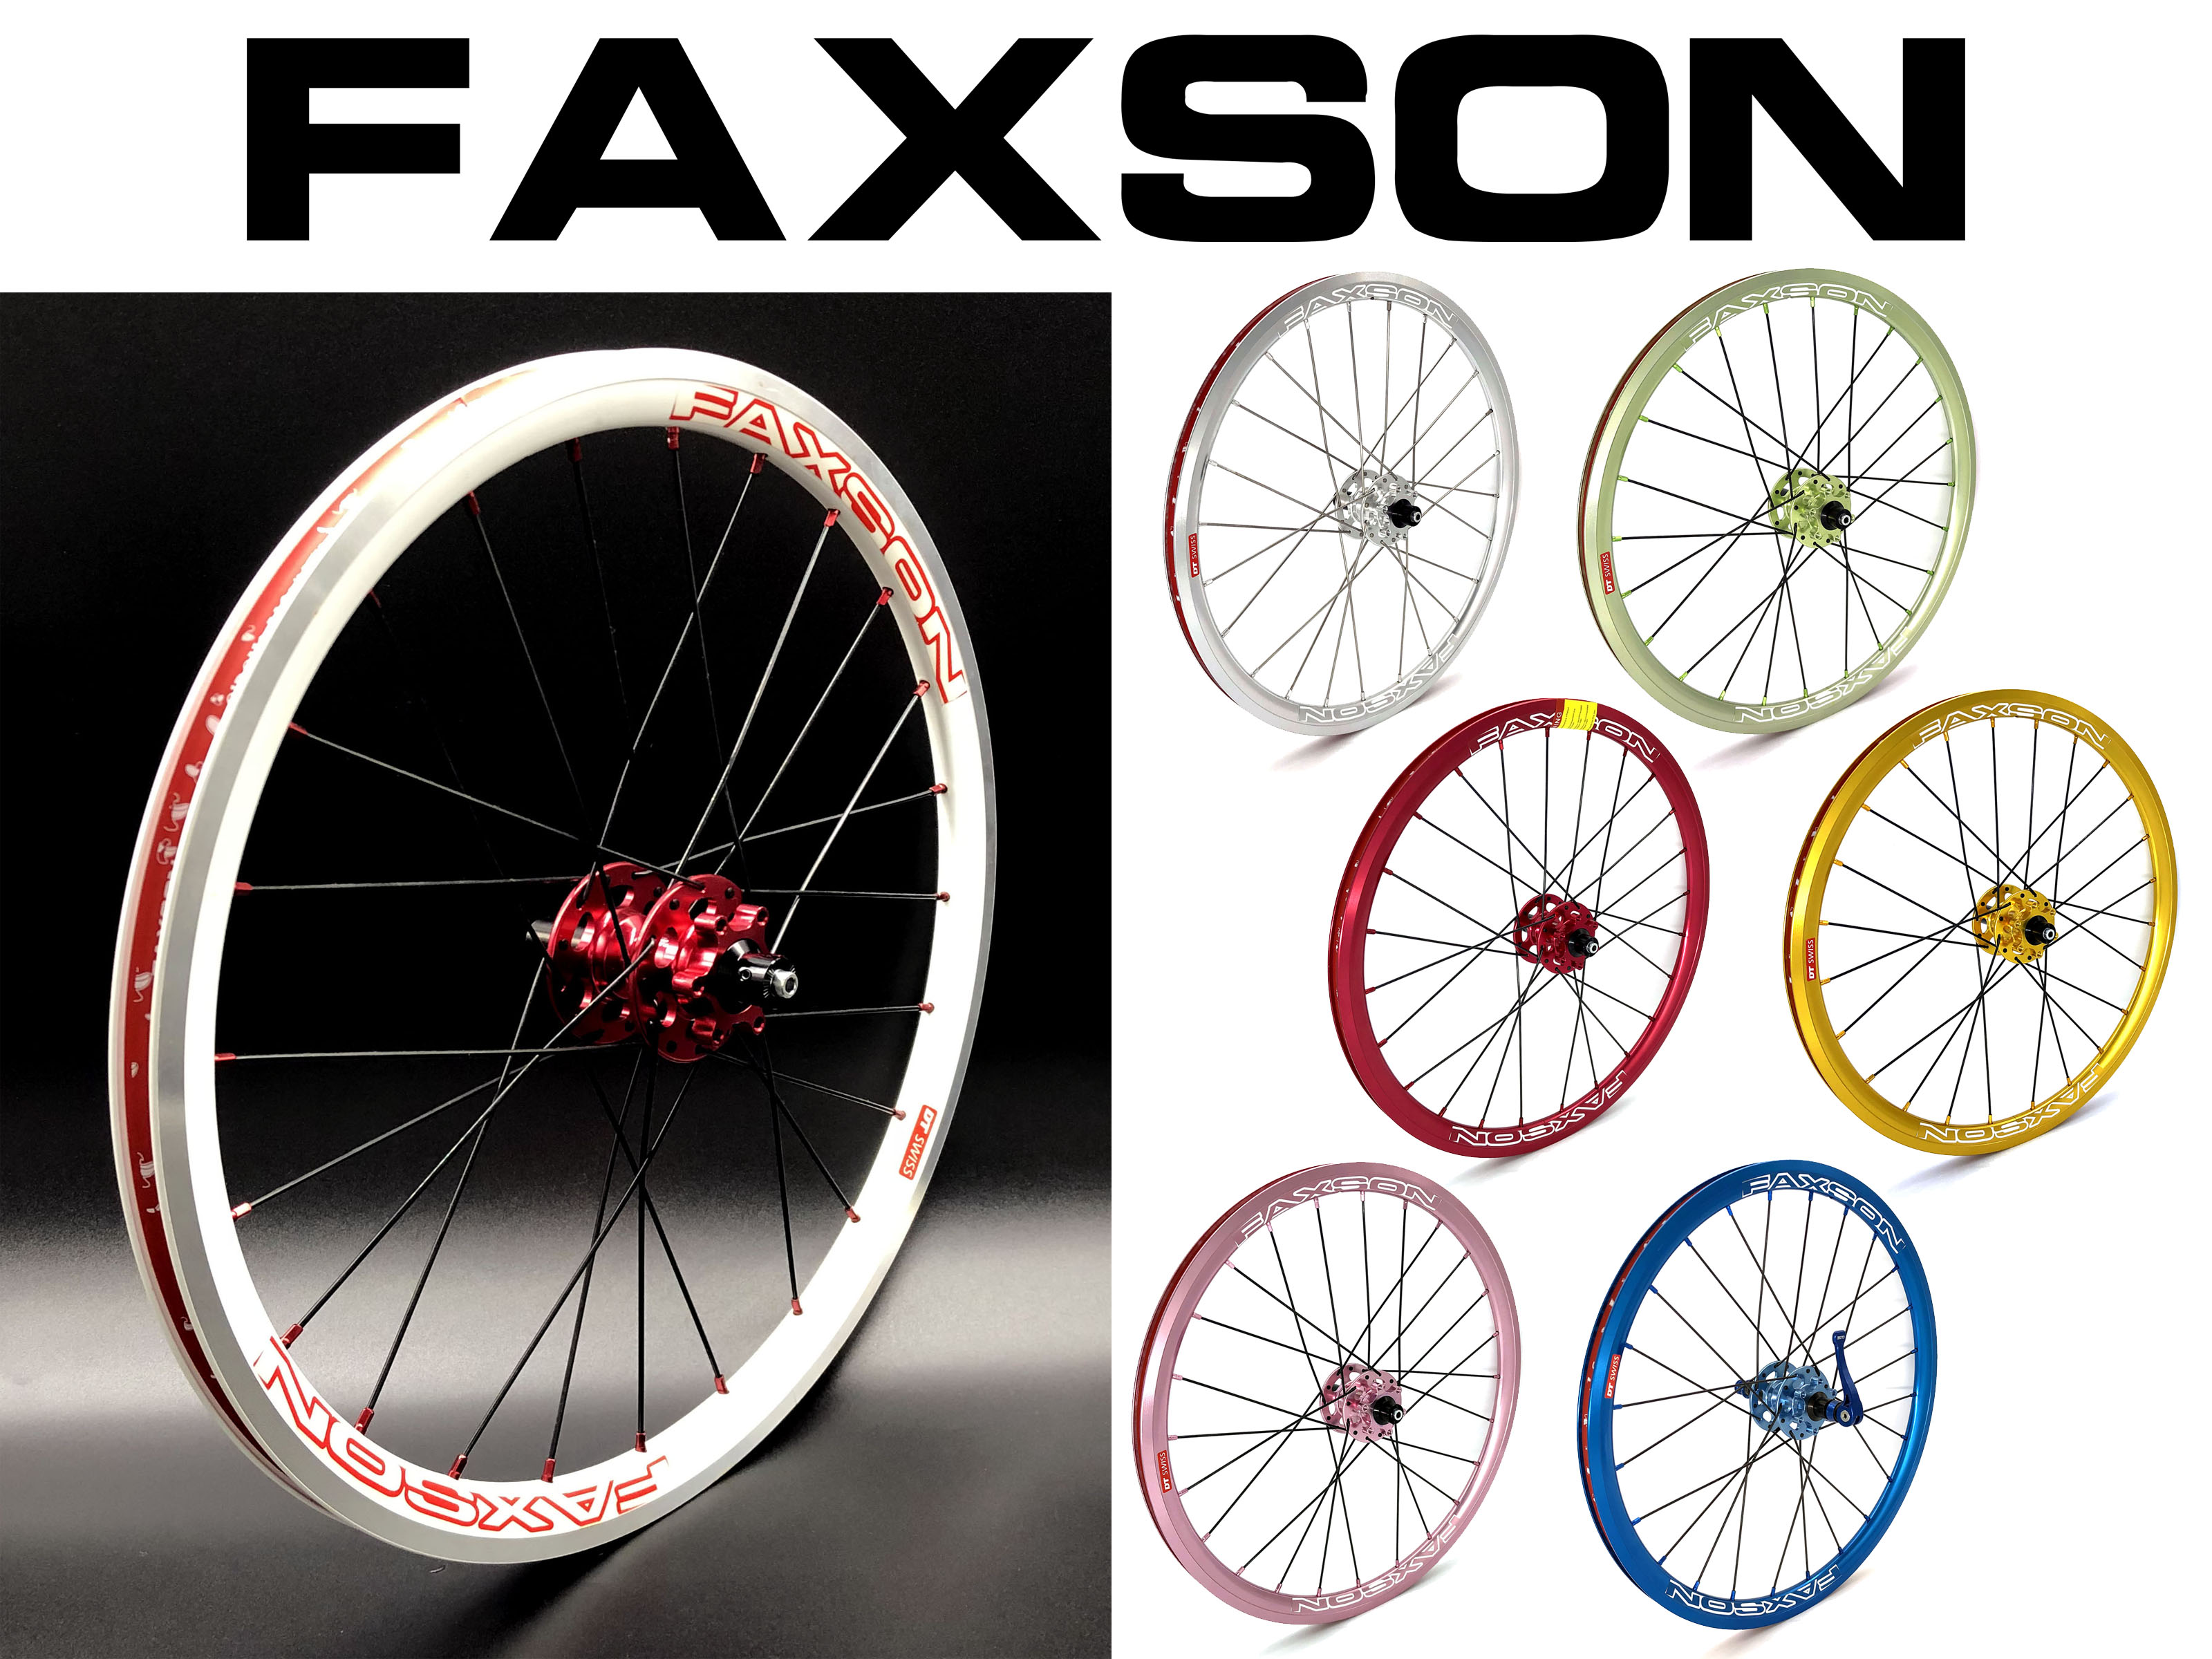 Faxson colorful Wheelset (Disc Brake) for Birdy upgrade to 20  only